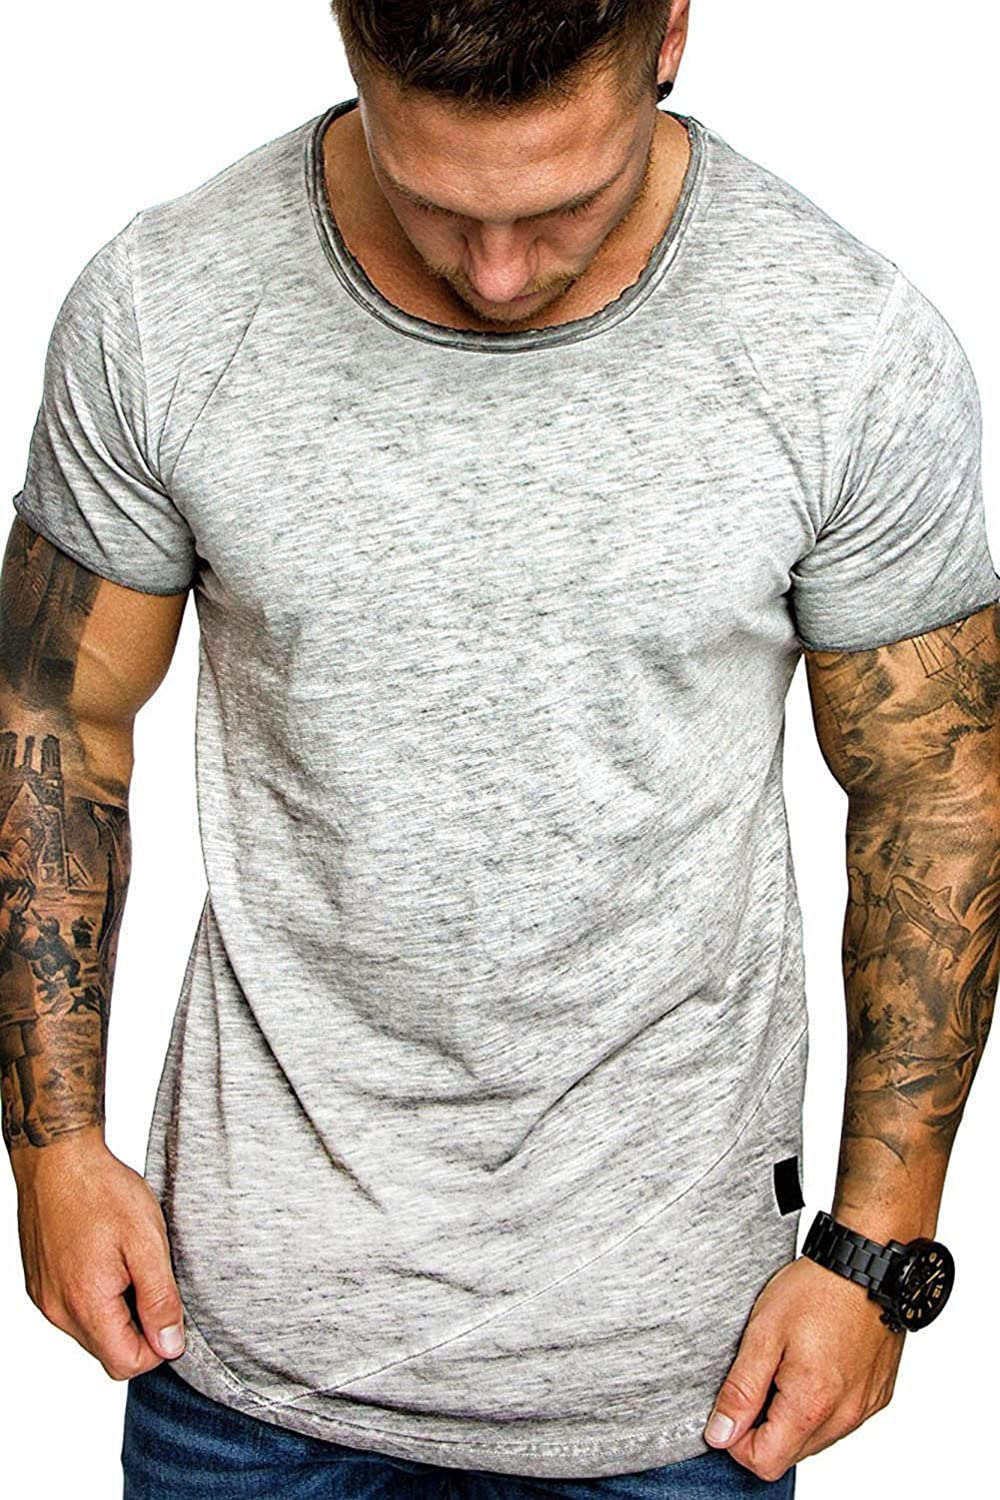 Trendy Men/'s Slim Fit O Neck Short Sleeve Muscle Tee T-shirt Casual Tops Blouse